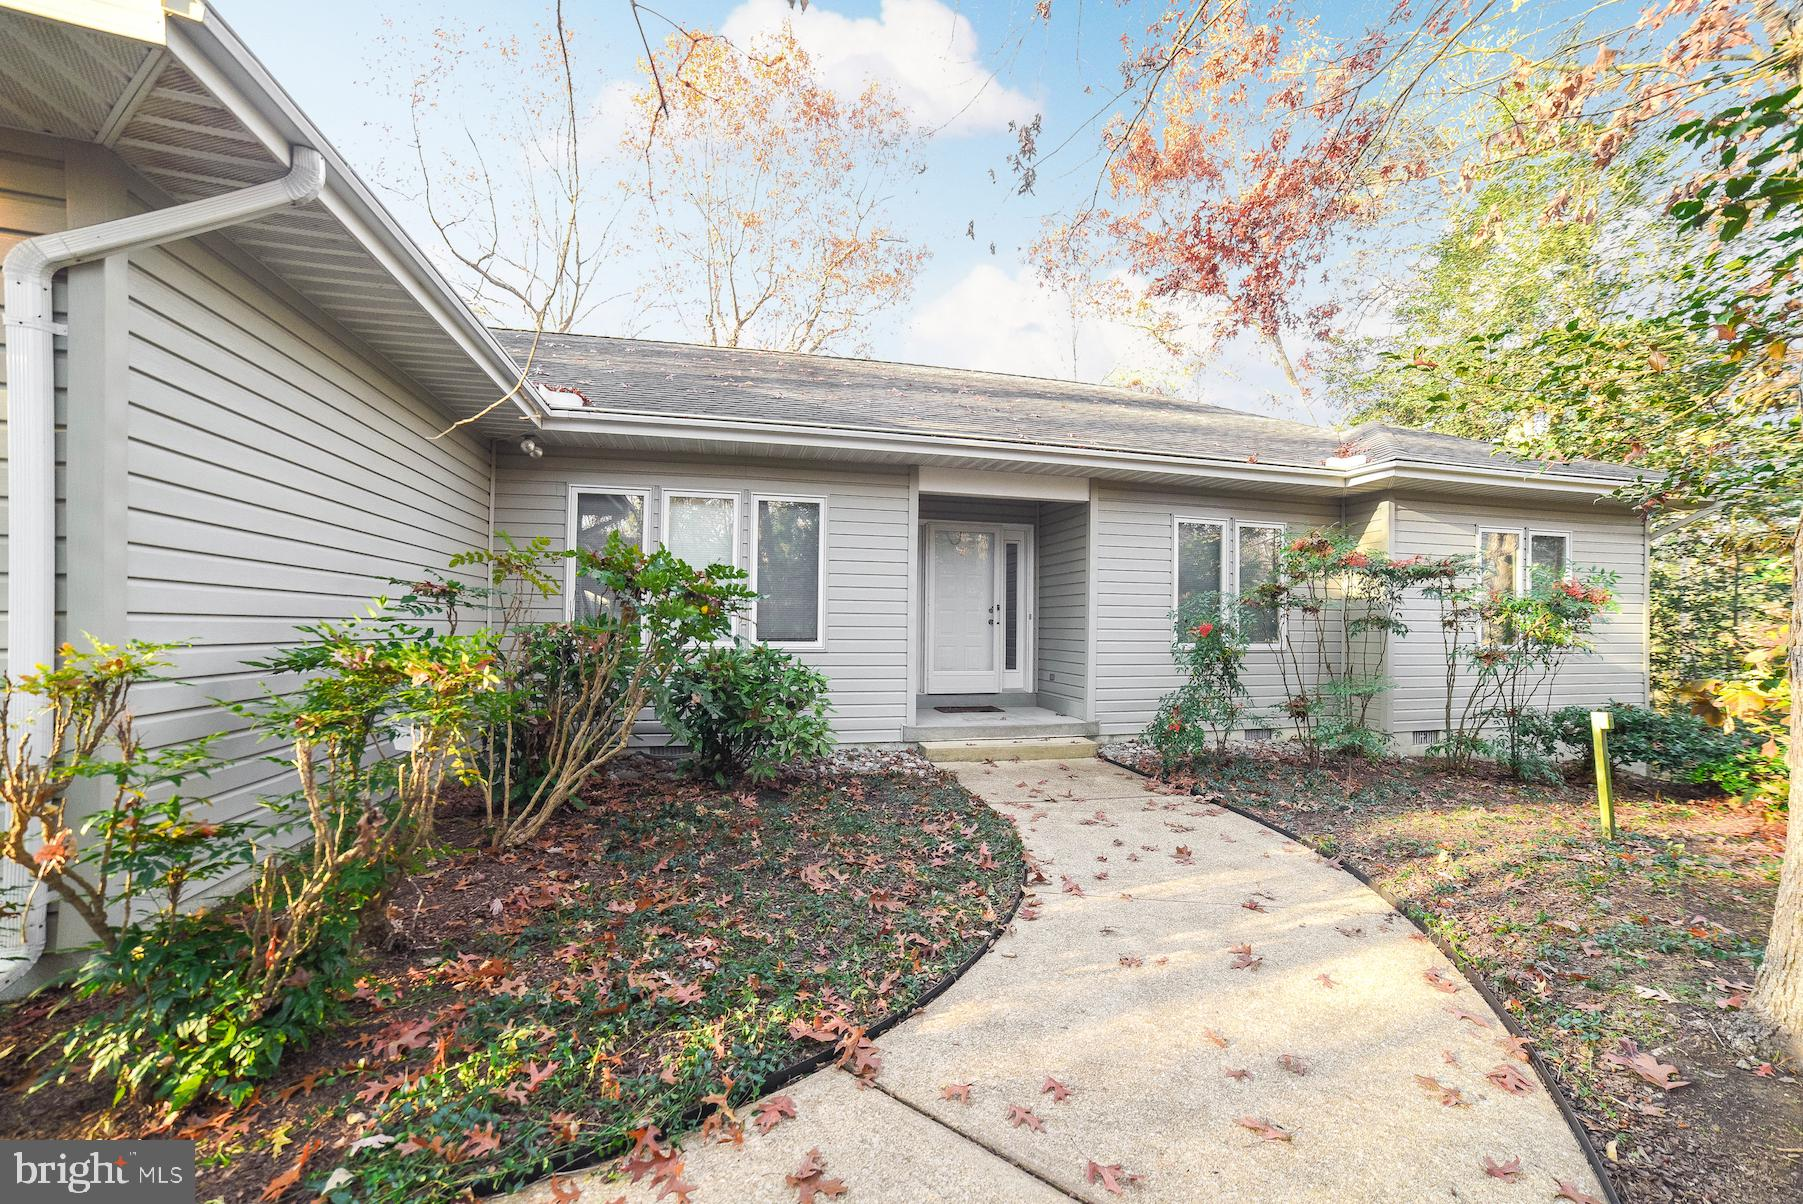 Must See 3 bedroom 2 bath Rambler on a private cul-de-sac. This home features an open floor plan wit